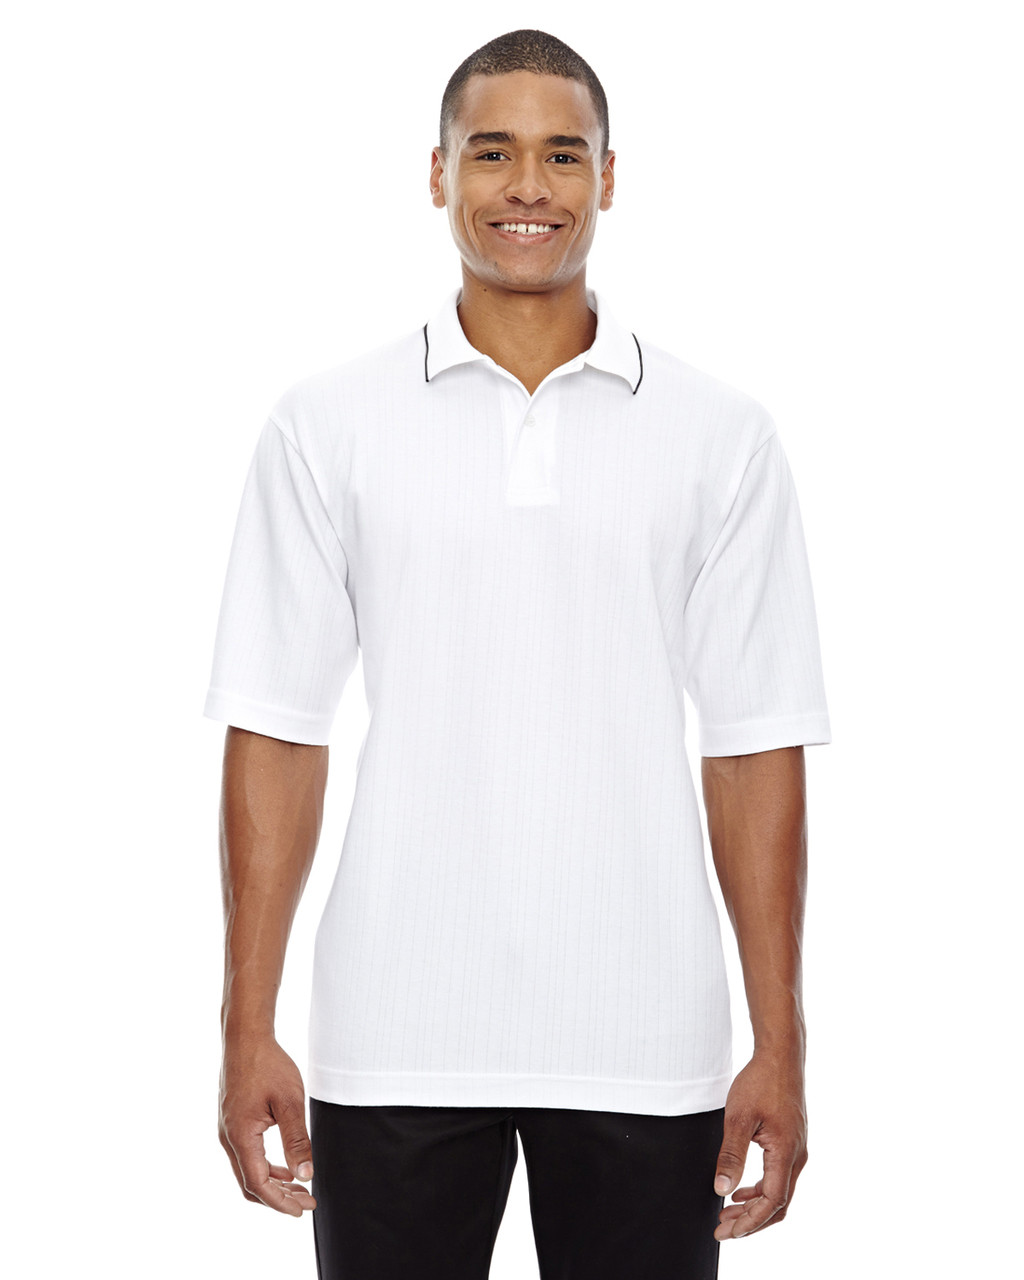 White - 85067 Extreme Men's Edry™ Needle Out Interlock Polo Shirt | BlankClothing.ca